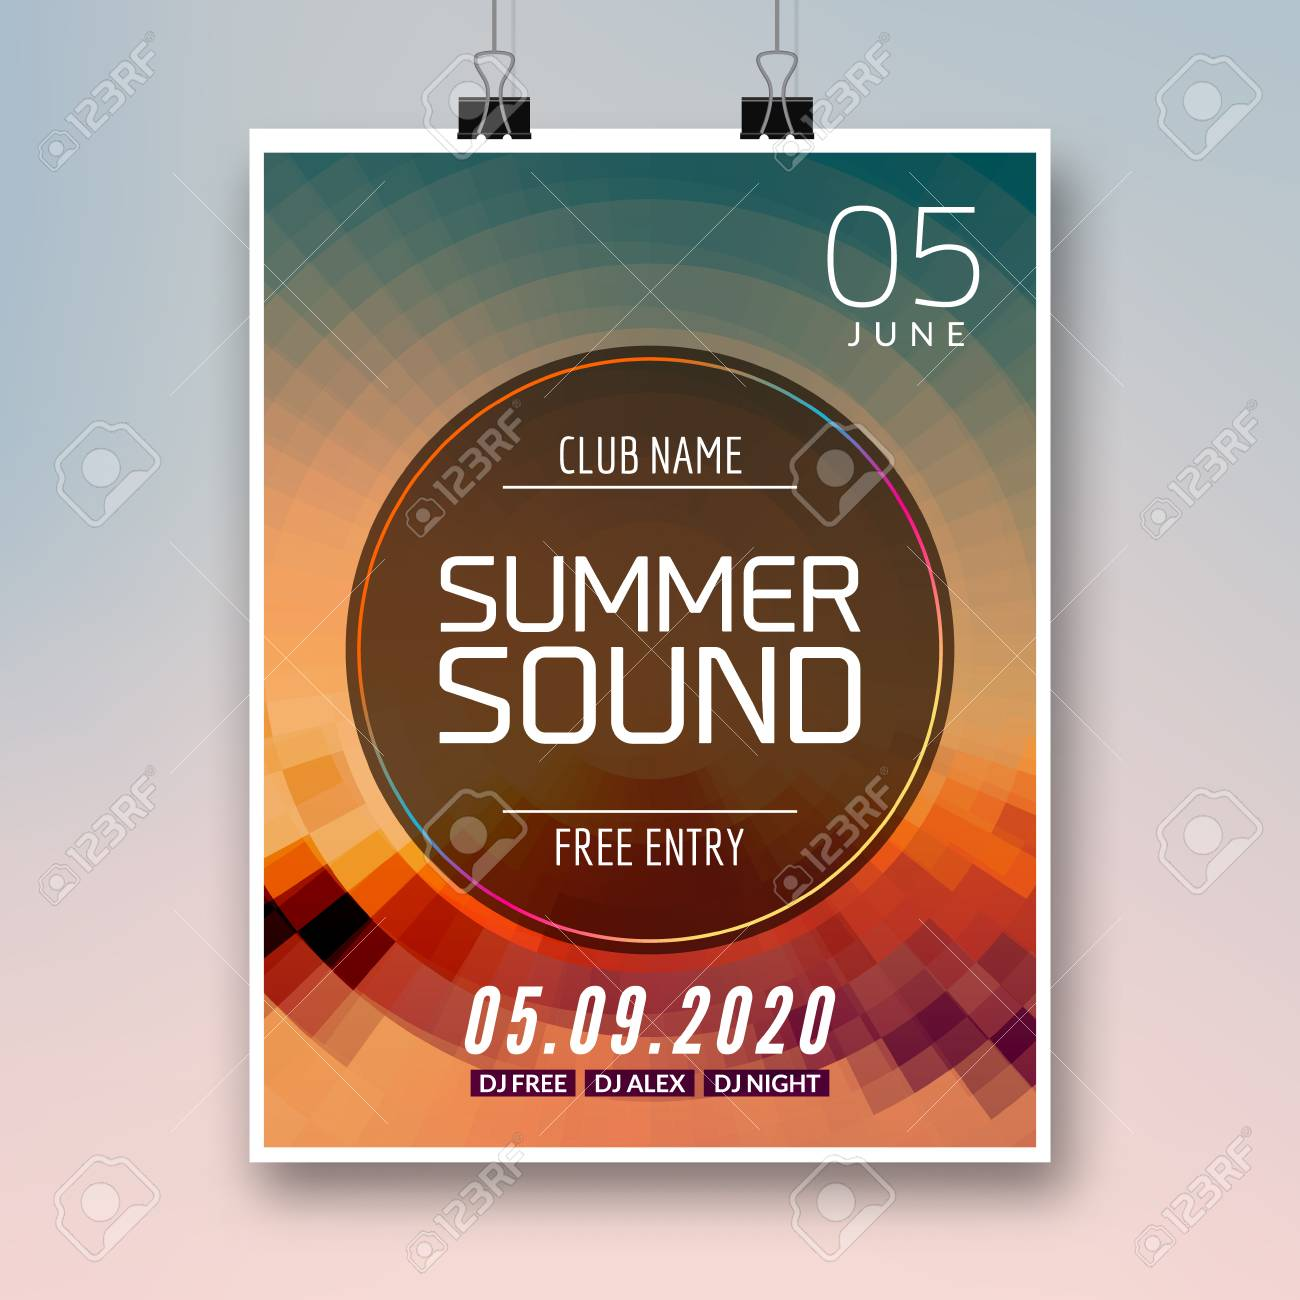 Music Summer Party Poster Graphic Design Disco Dance Flyer Or Royalty Free Cliparts Vectors And Stock Illustration Image 83034504